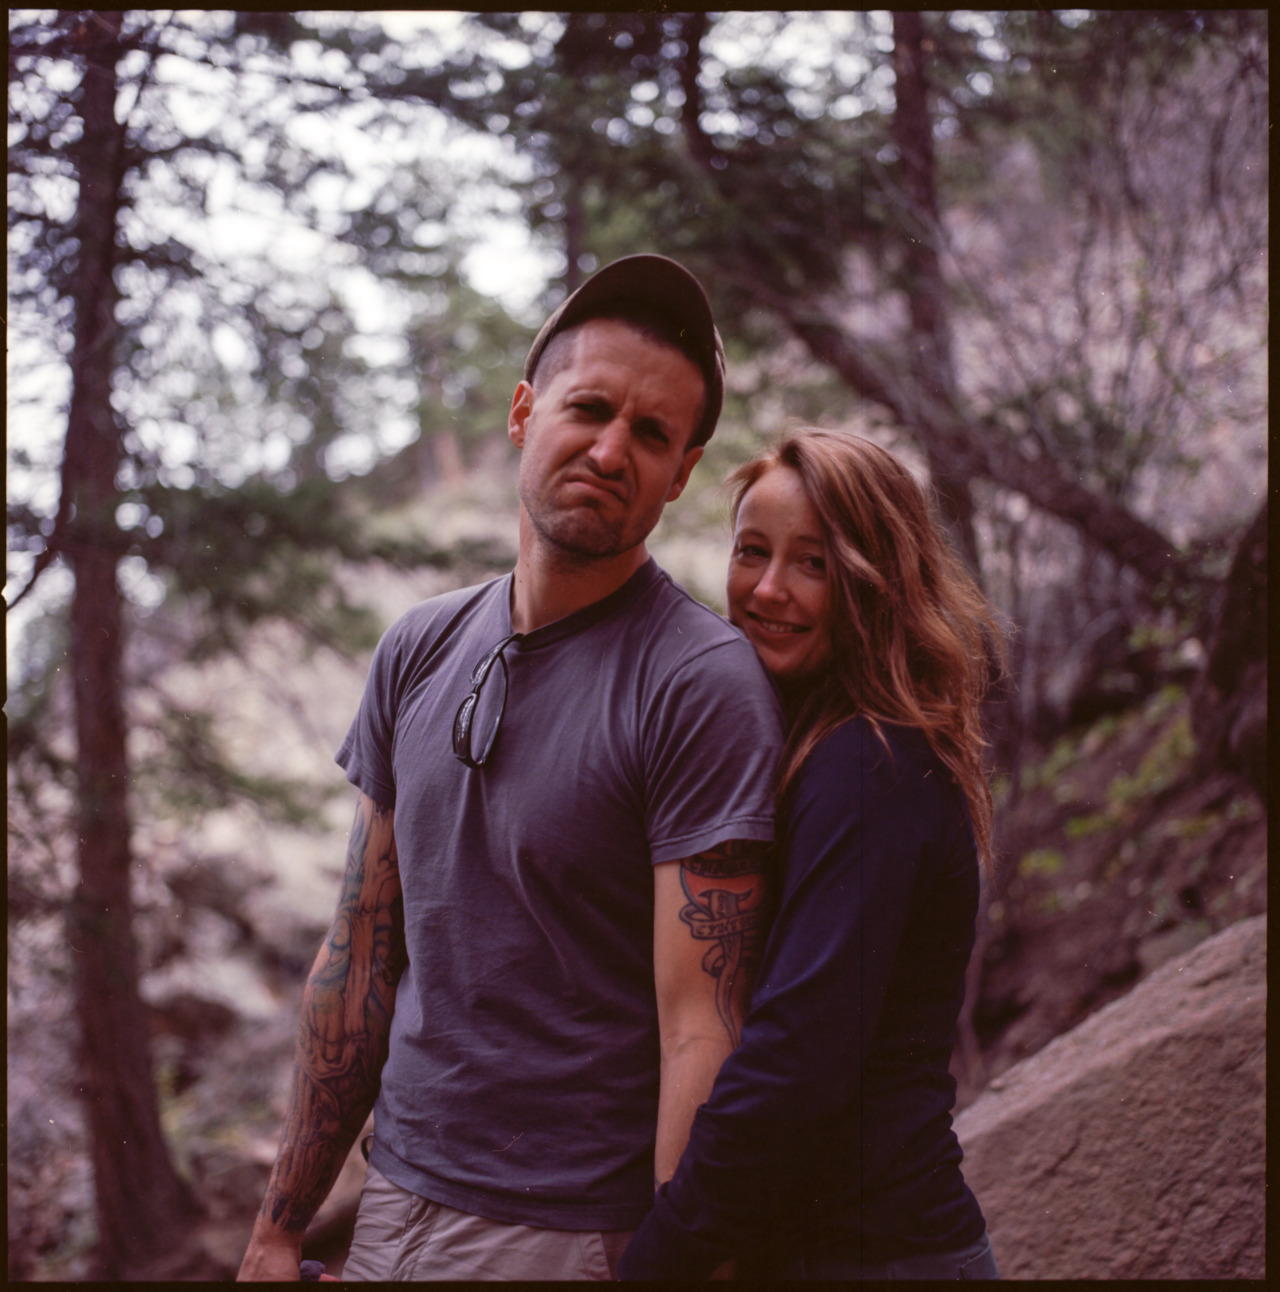 Eric Hatsel with Girl | Boulder, CO Hasselblad 500CM Zeiss Prontor CF T* 80mm f/2.8 Kodak Ektar 100 CanoScan 8800F